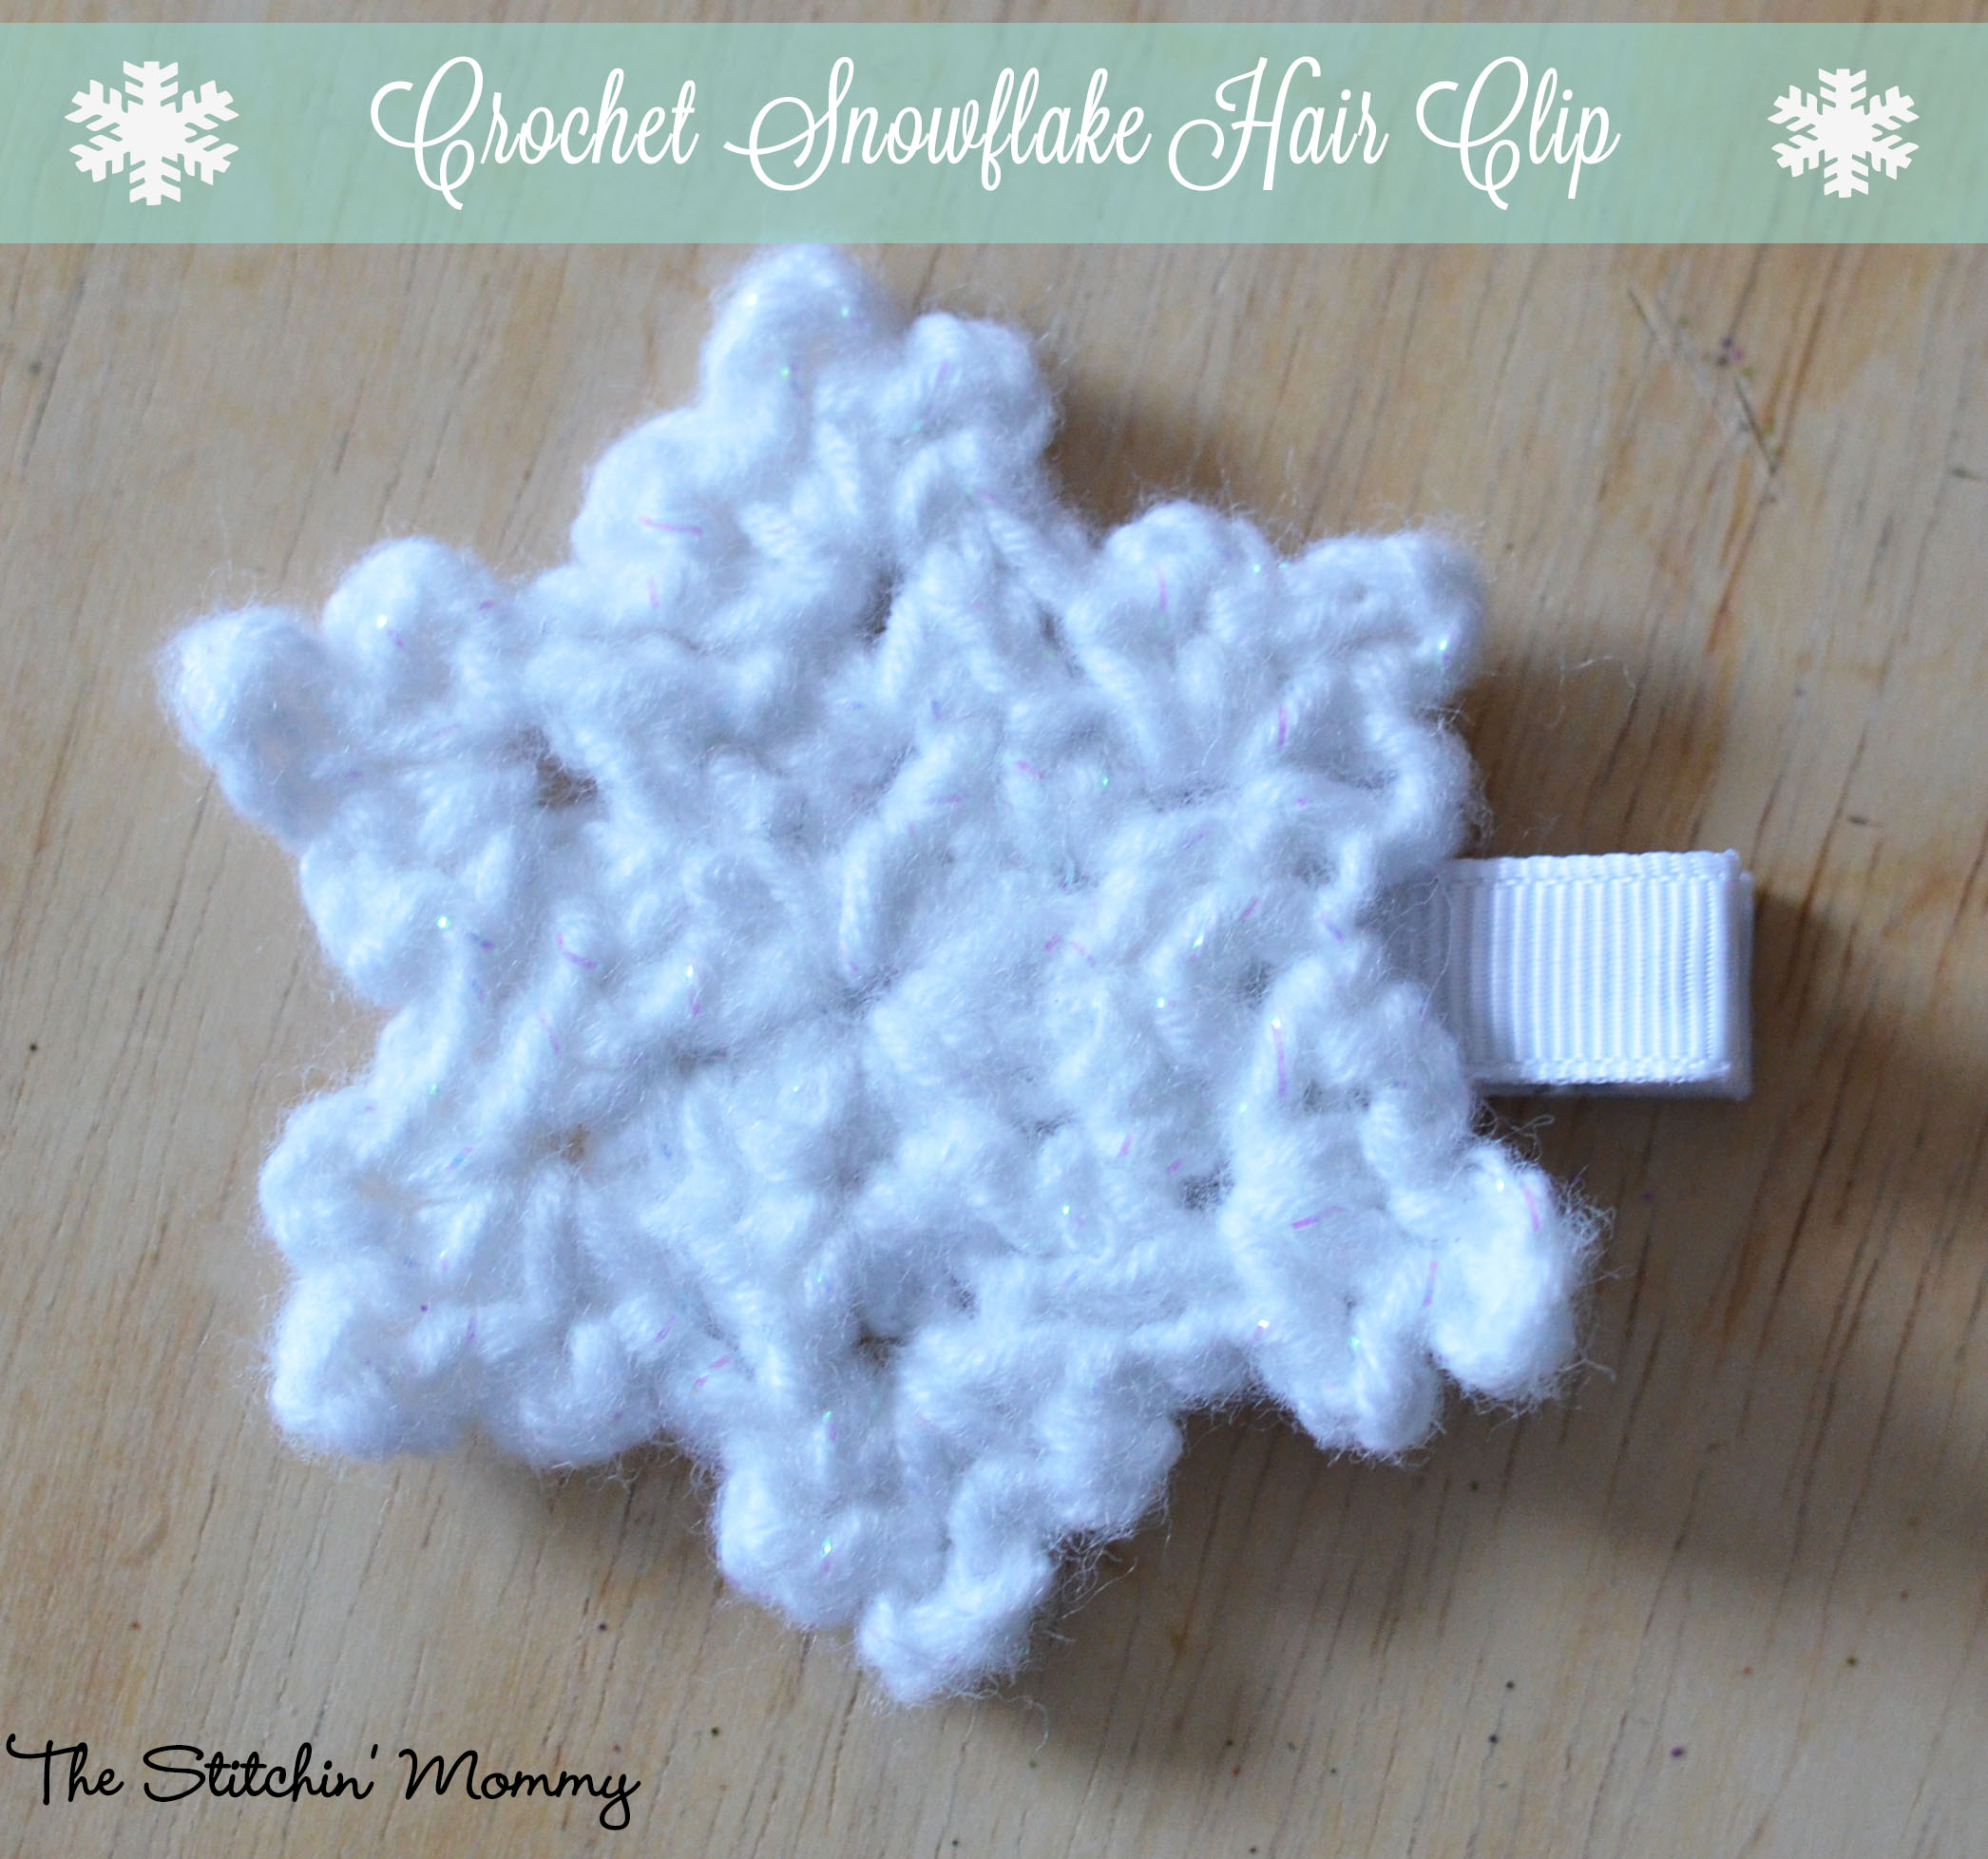 Crochet Snowflake Hair Clip Free Pattern The Stitchin Mommy